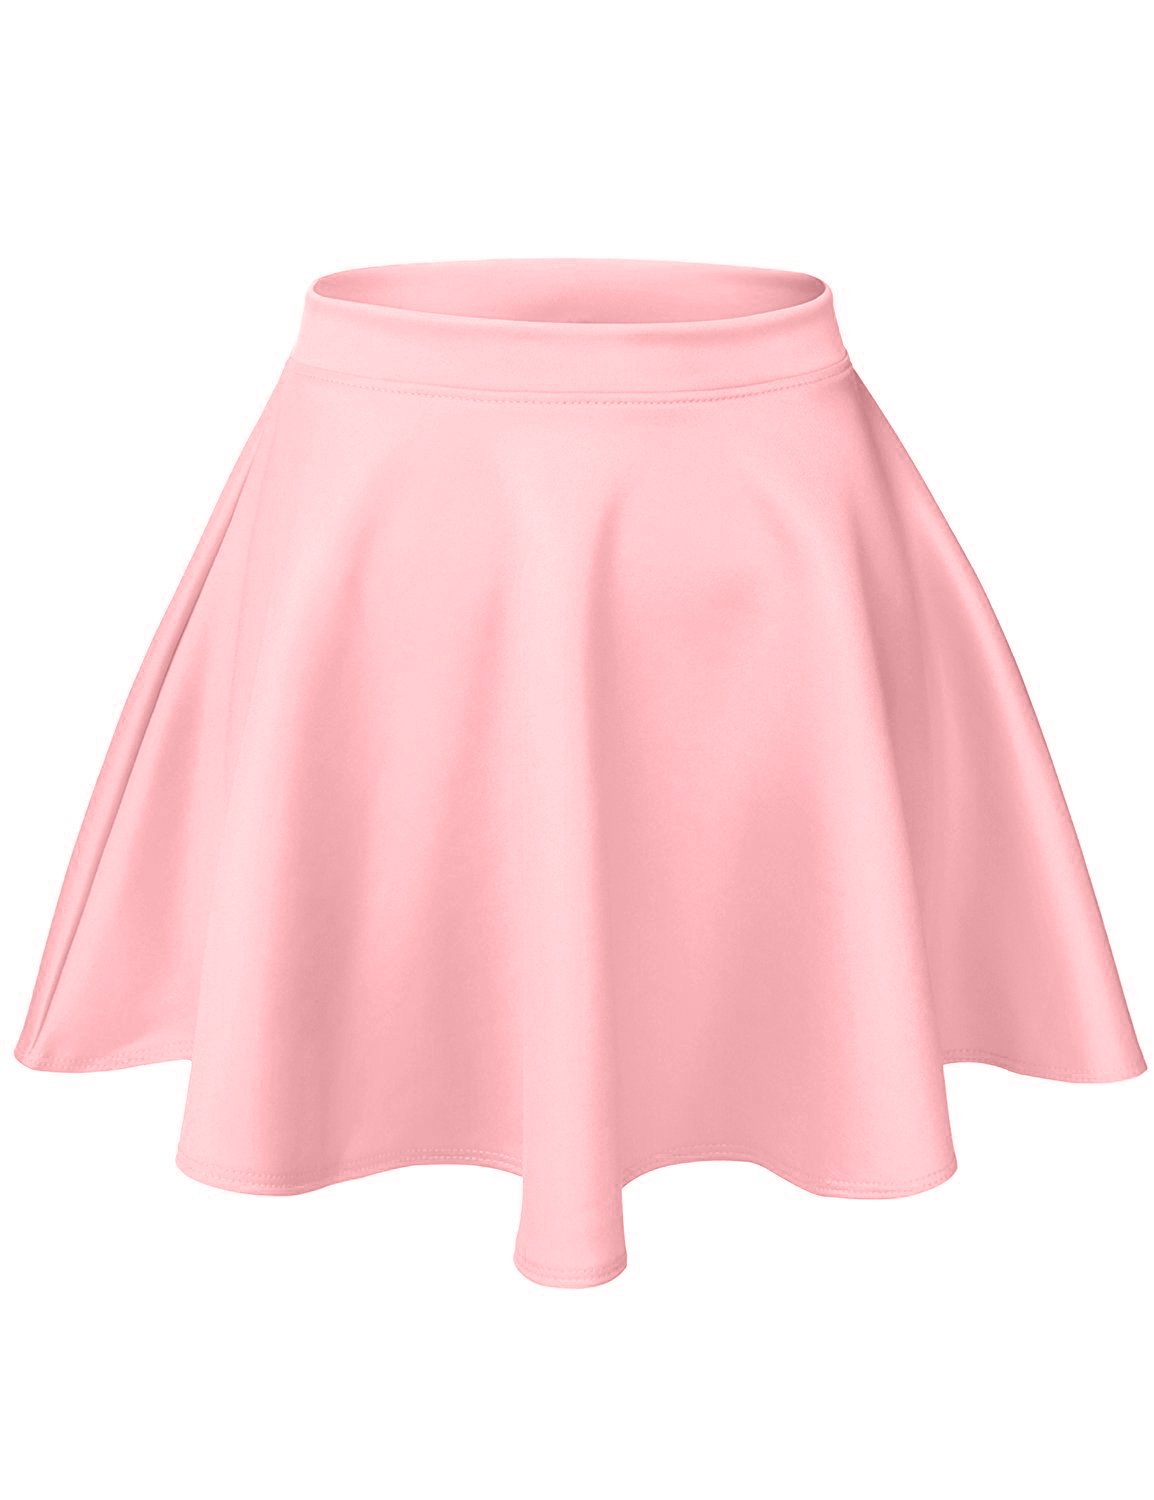 Luna Flower Women's Basic Versatile Stretchy Flared Casual Mini Skater Skirt Mauve Large (GSKW001)